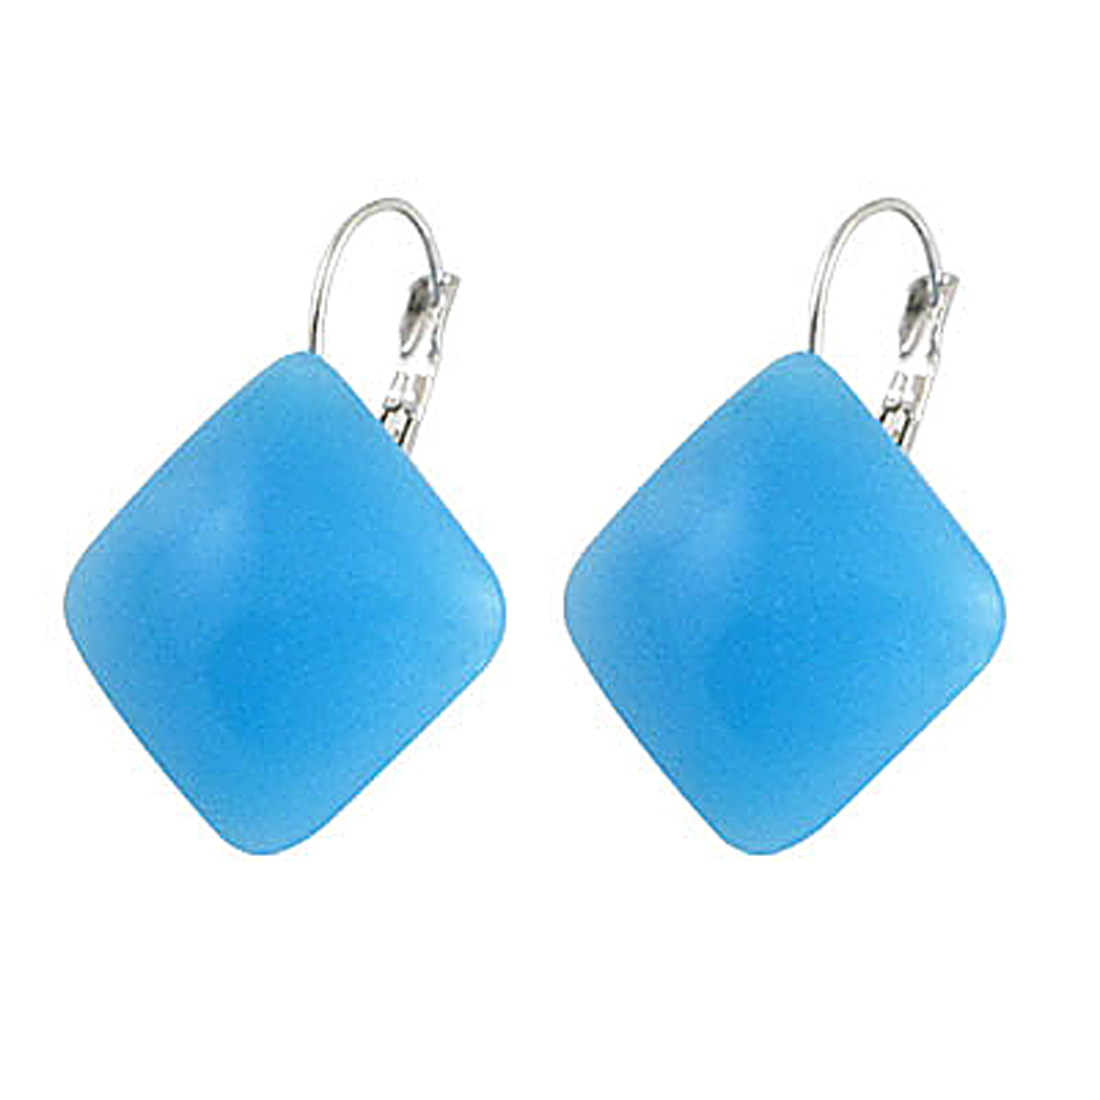 Sky Blue Square Plastic Decor Clip Earrings for Lady